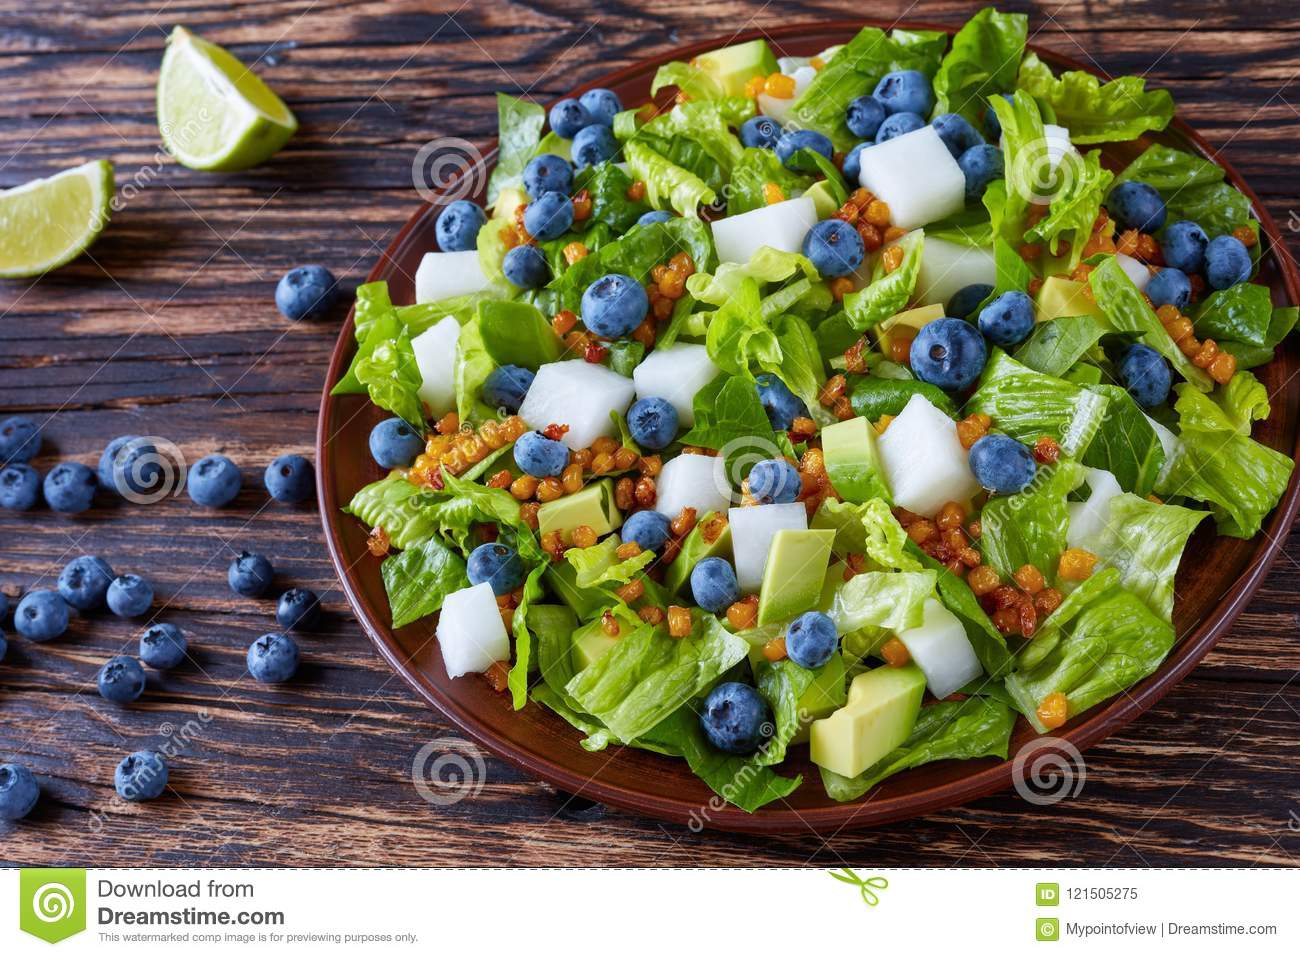 Mexican Salad with jicama and berries